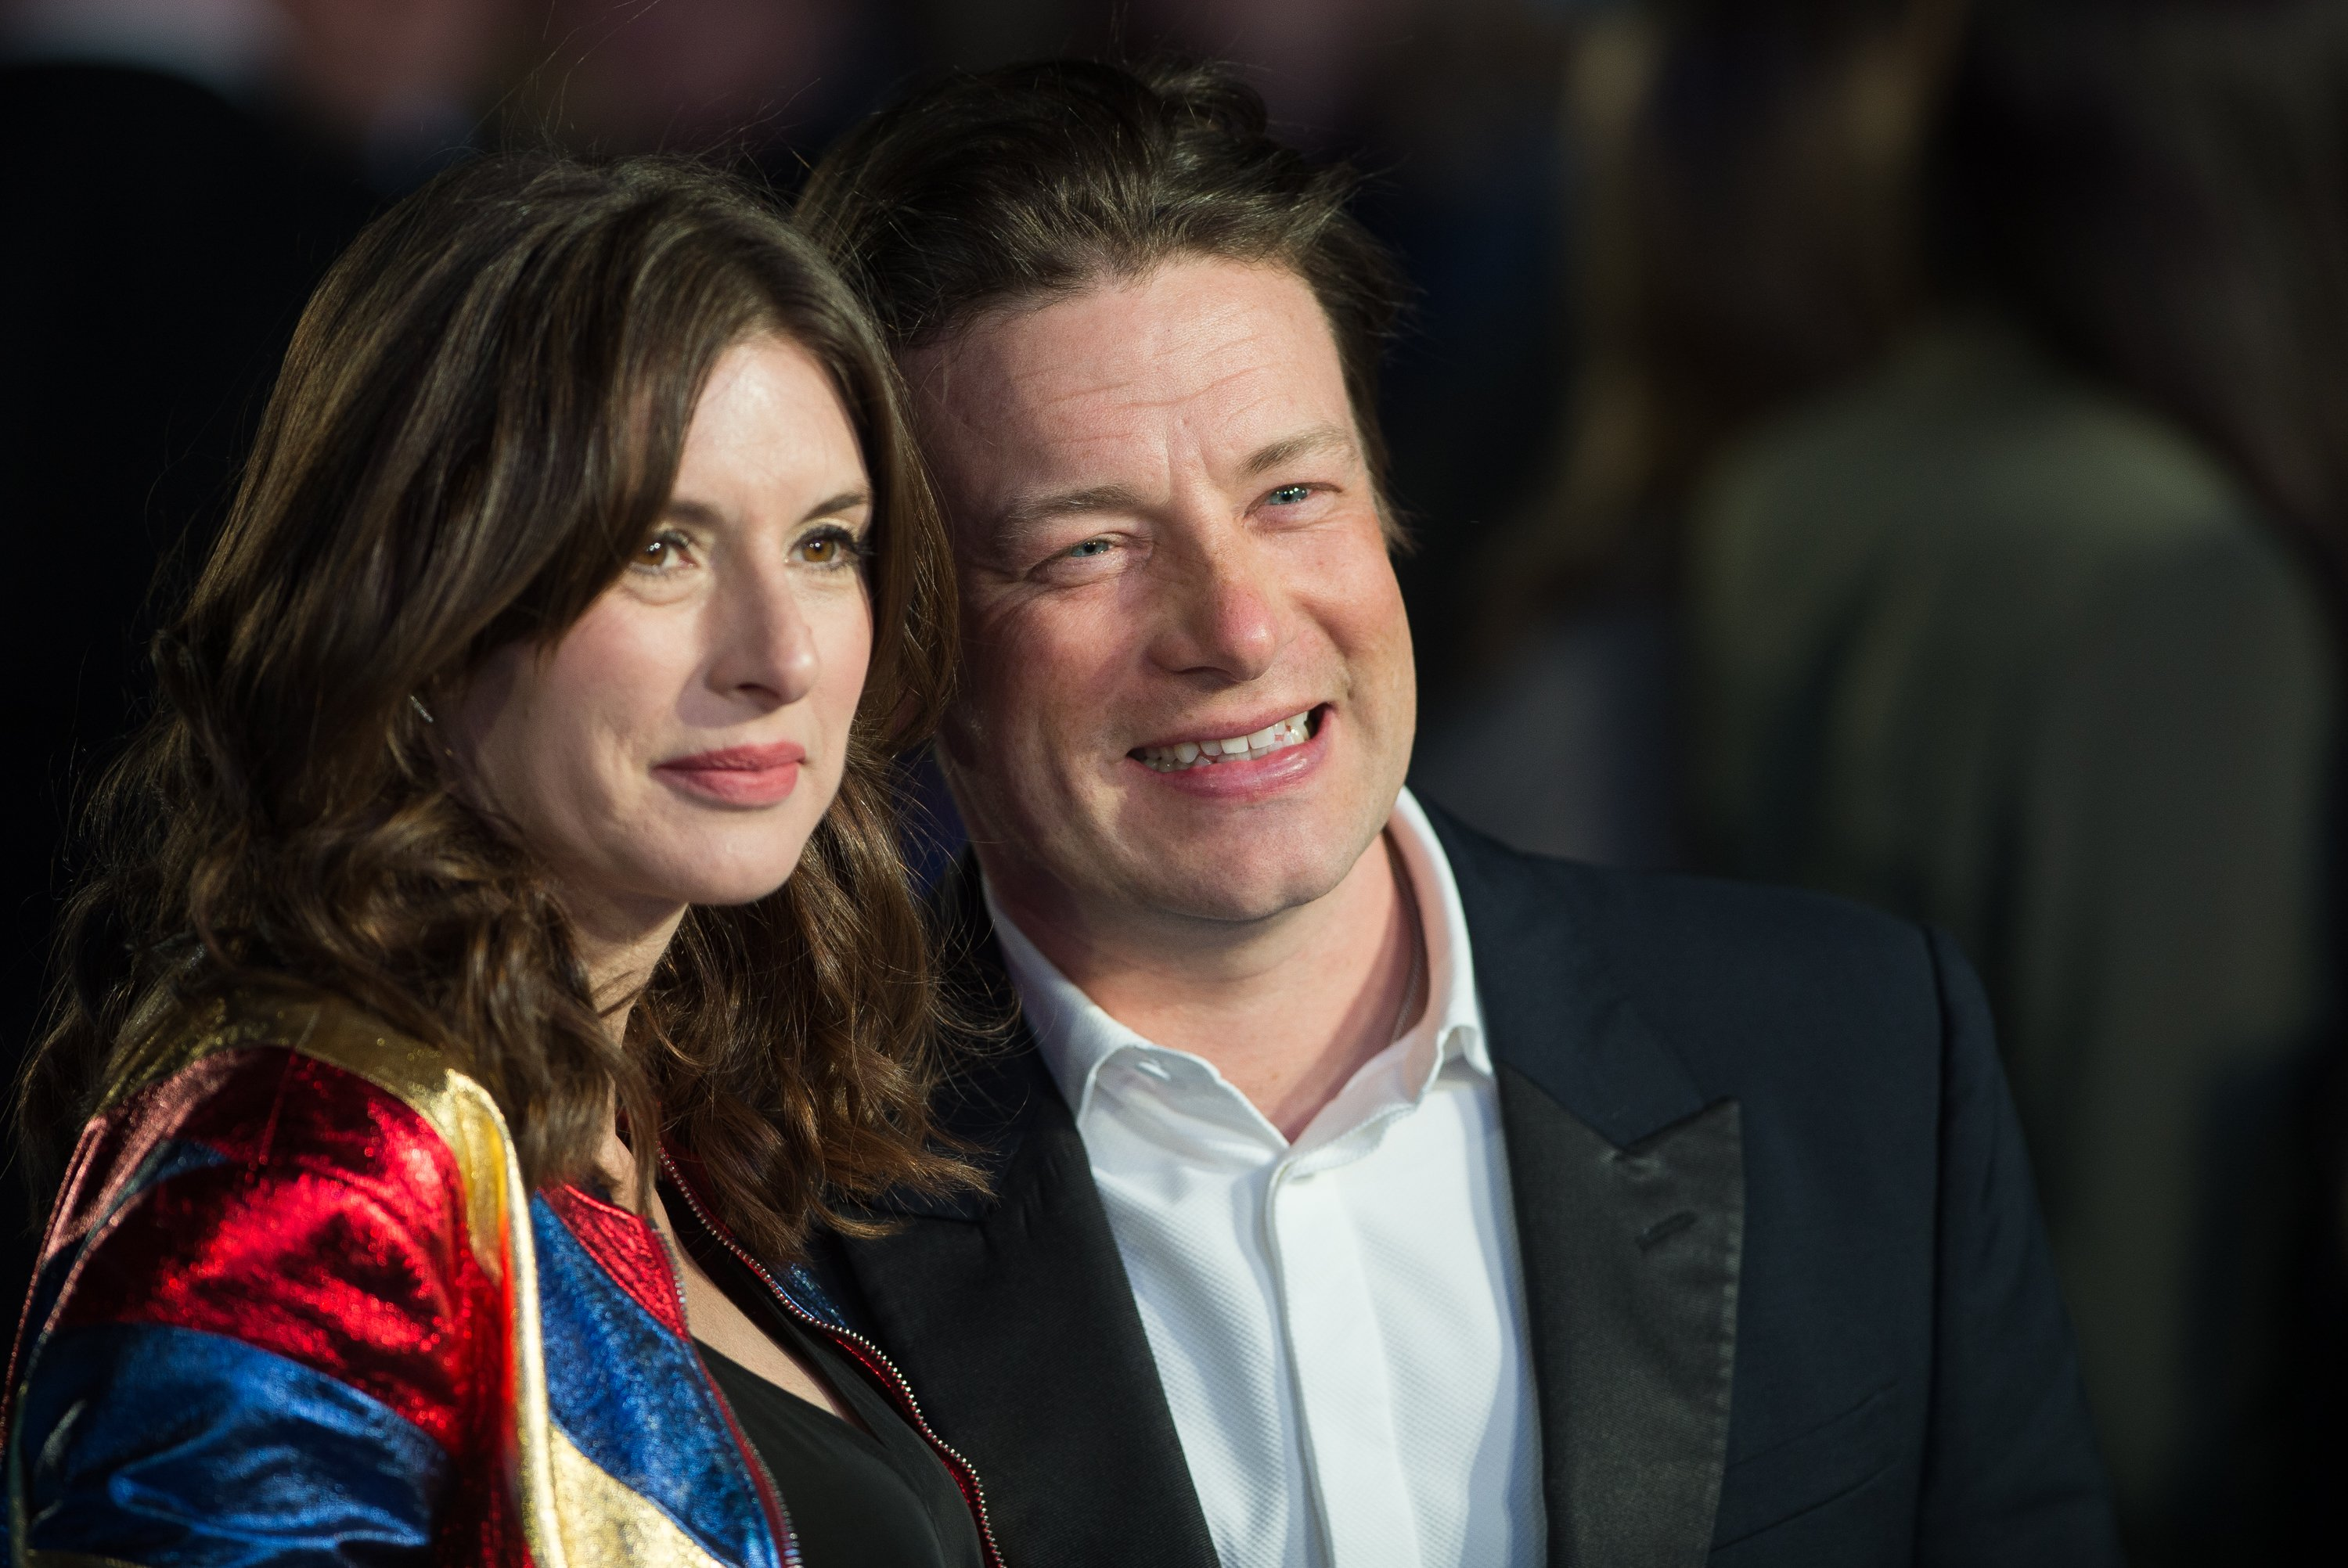 """Jools Oliver and Jamie Oliver pictured at the European premiere of """"Eddie the Eagle,"""" 2016, London, England. 